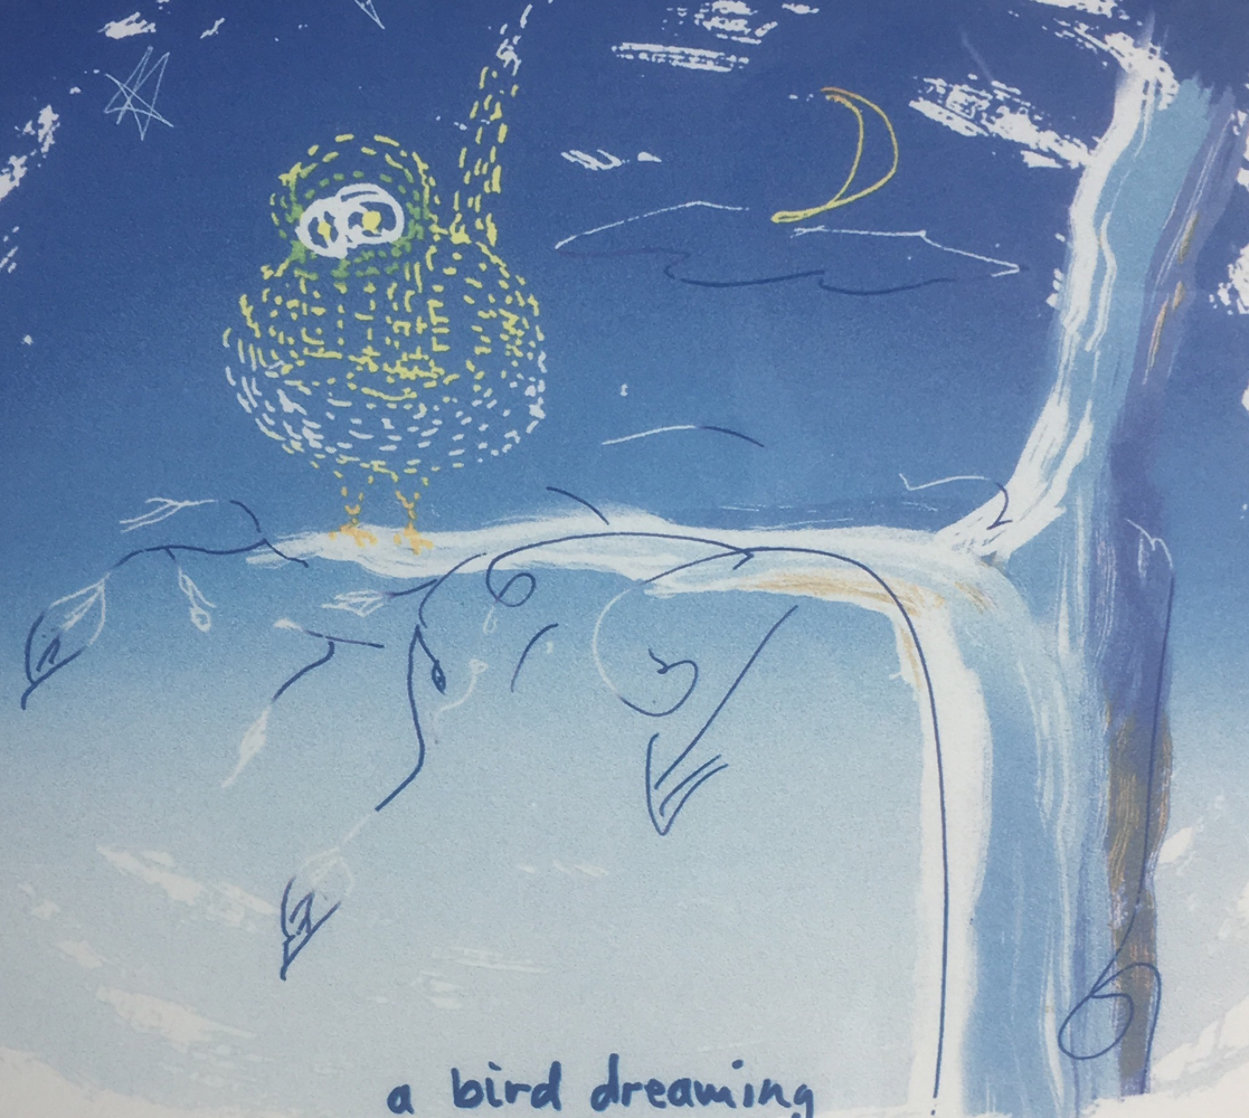 A Bird Dreaming 1999 Limited Edition Print by John Lennon